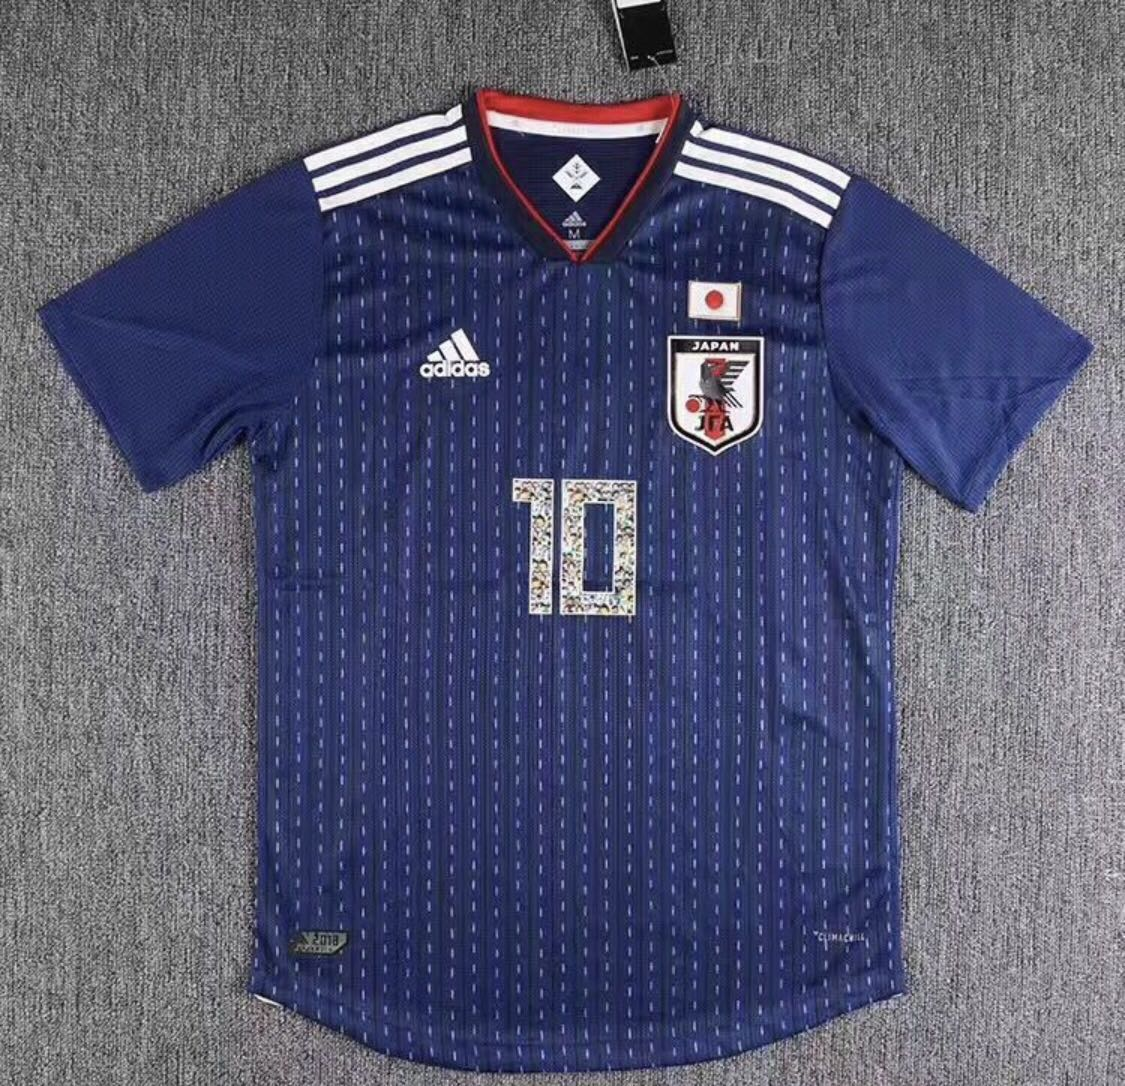 5b772acd4 [PREORDER] Adidas Japan Captain Tsubasa 2018 World Cup Special Edition  Jersey, Sports, Sports Apparel on Carousell